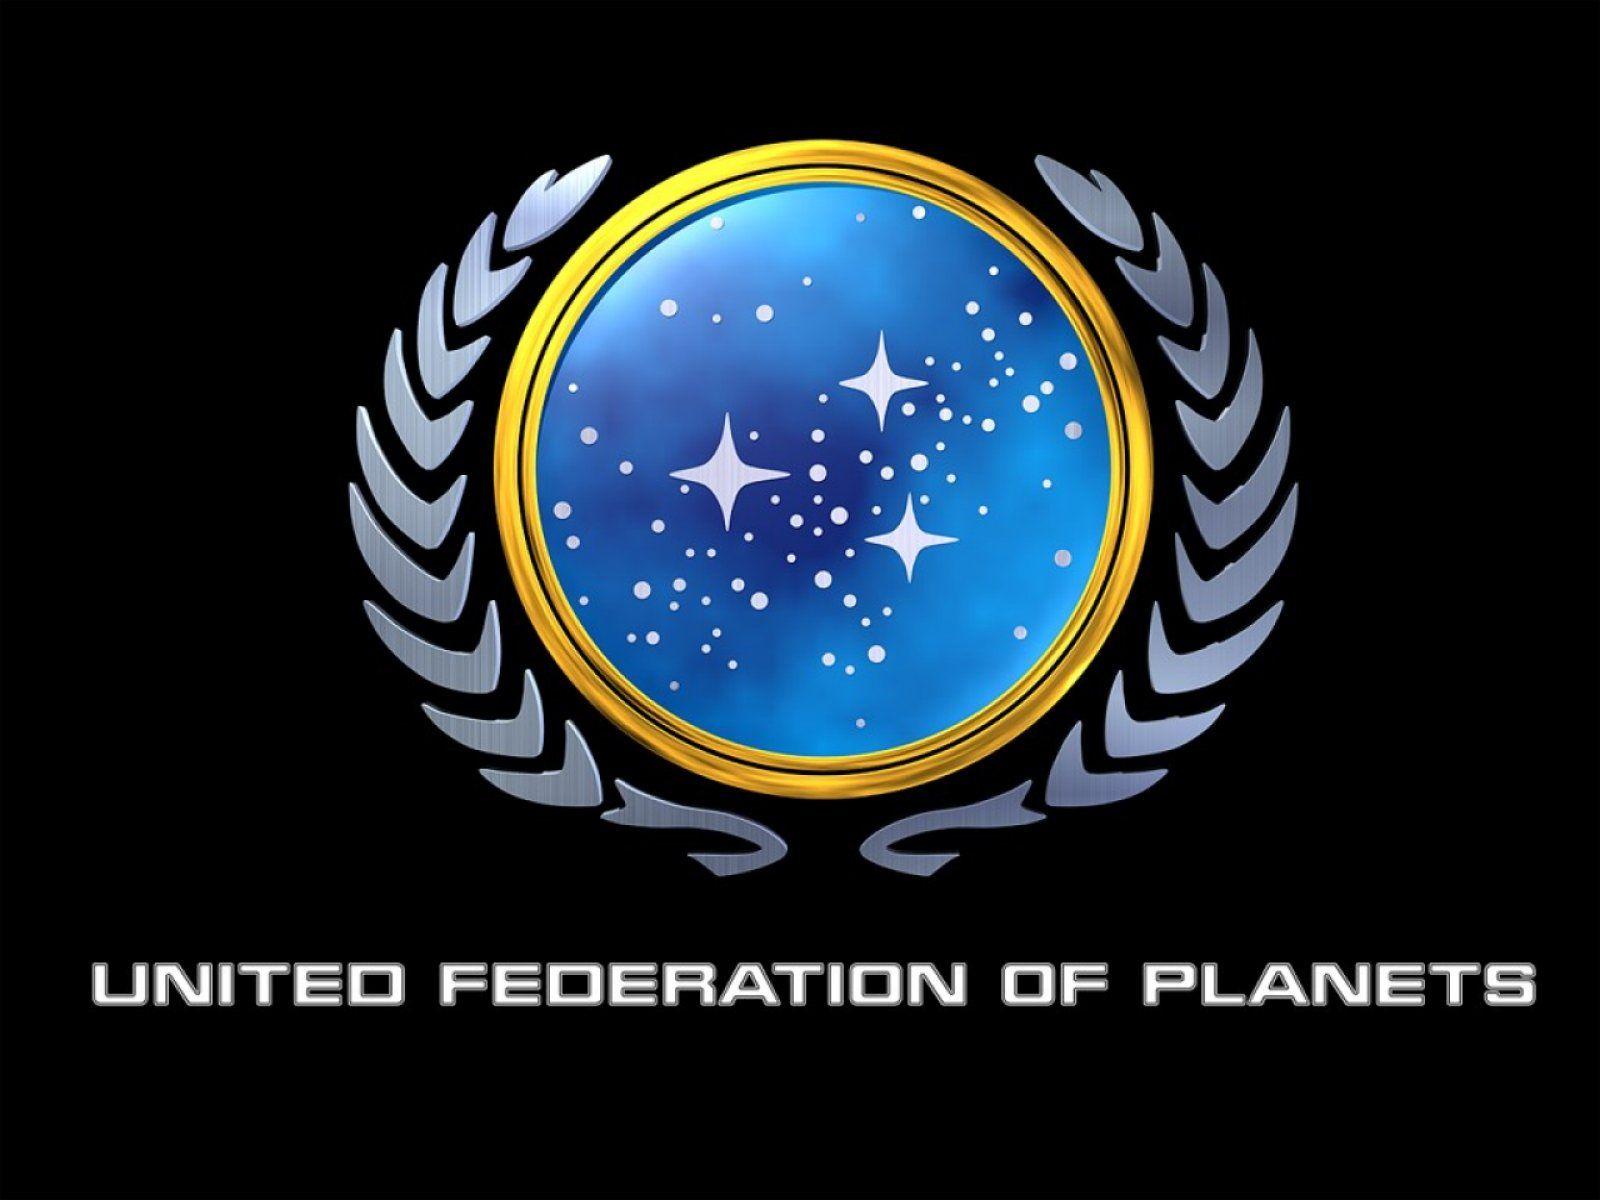 Star Trek United Federation Of Planet Logo Free Star Trek Desktop Wallpaper Size 1600x1200 Star Trek Wallpaper United Federation Of Planets Star Trek Logo